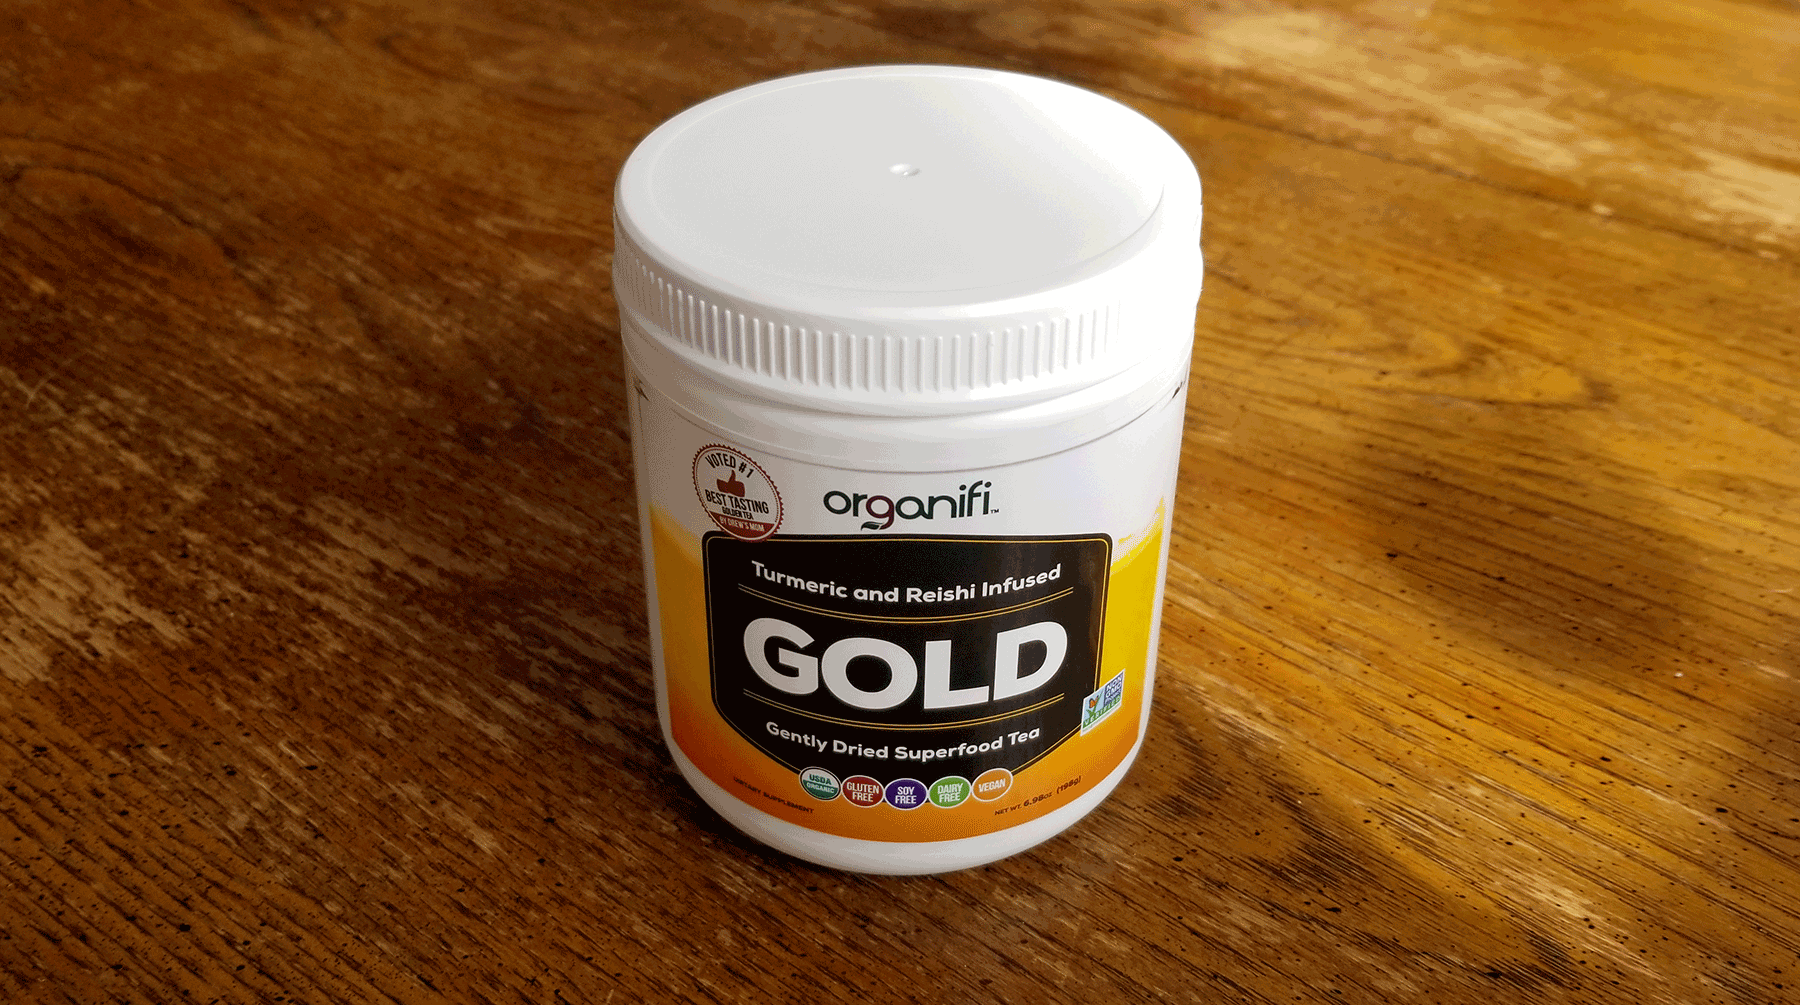 Organifi GOLD Superfood Tea Review